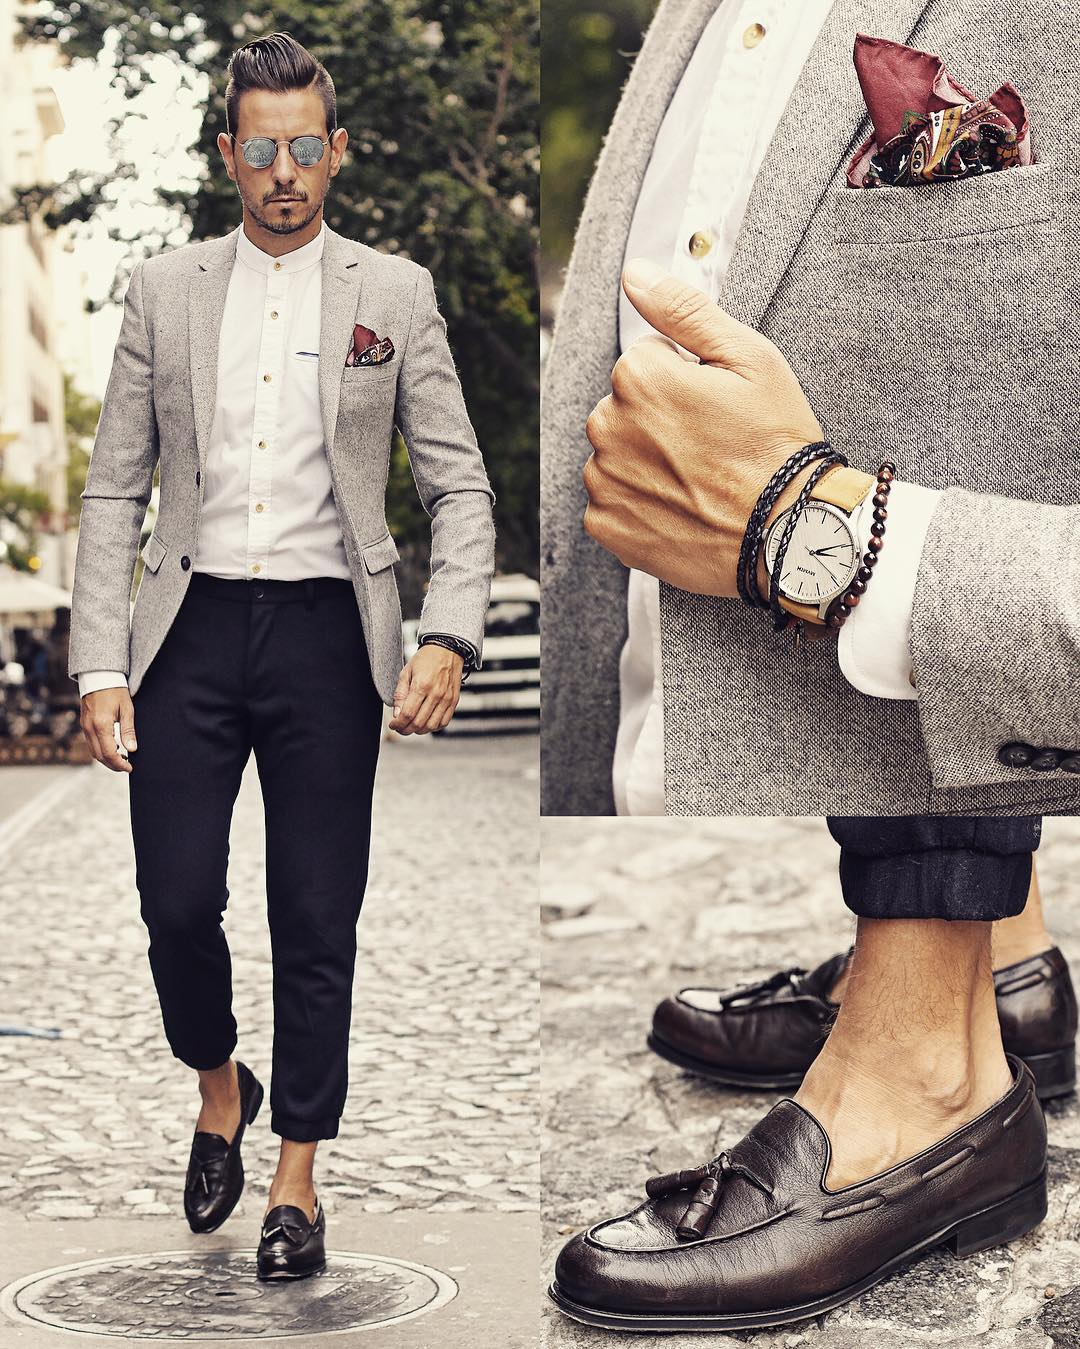 Suit, Accessories And Shoes Combinations For Men